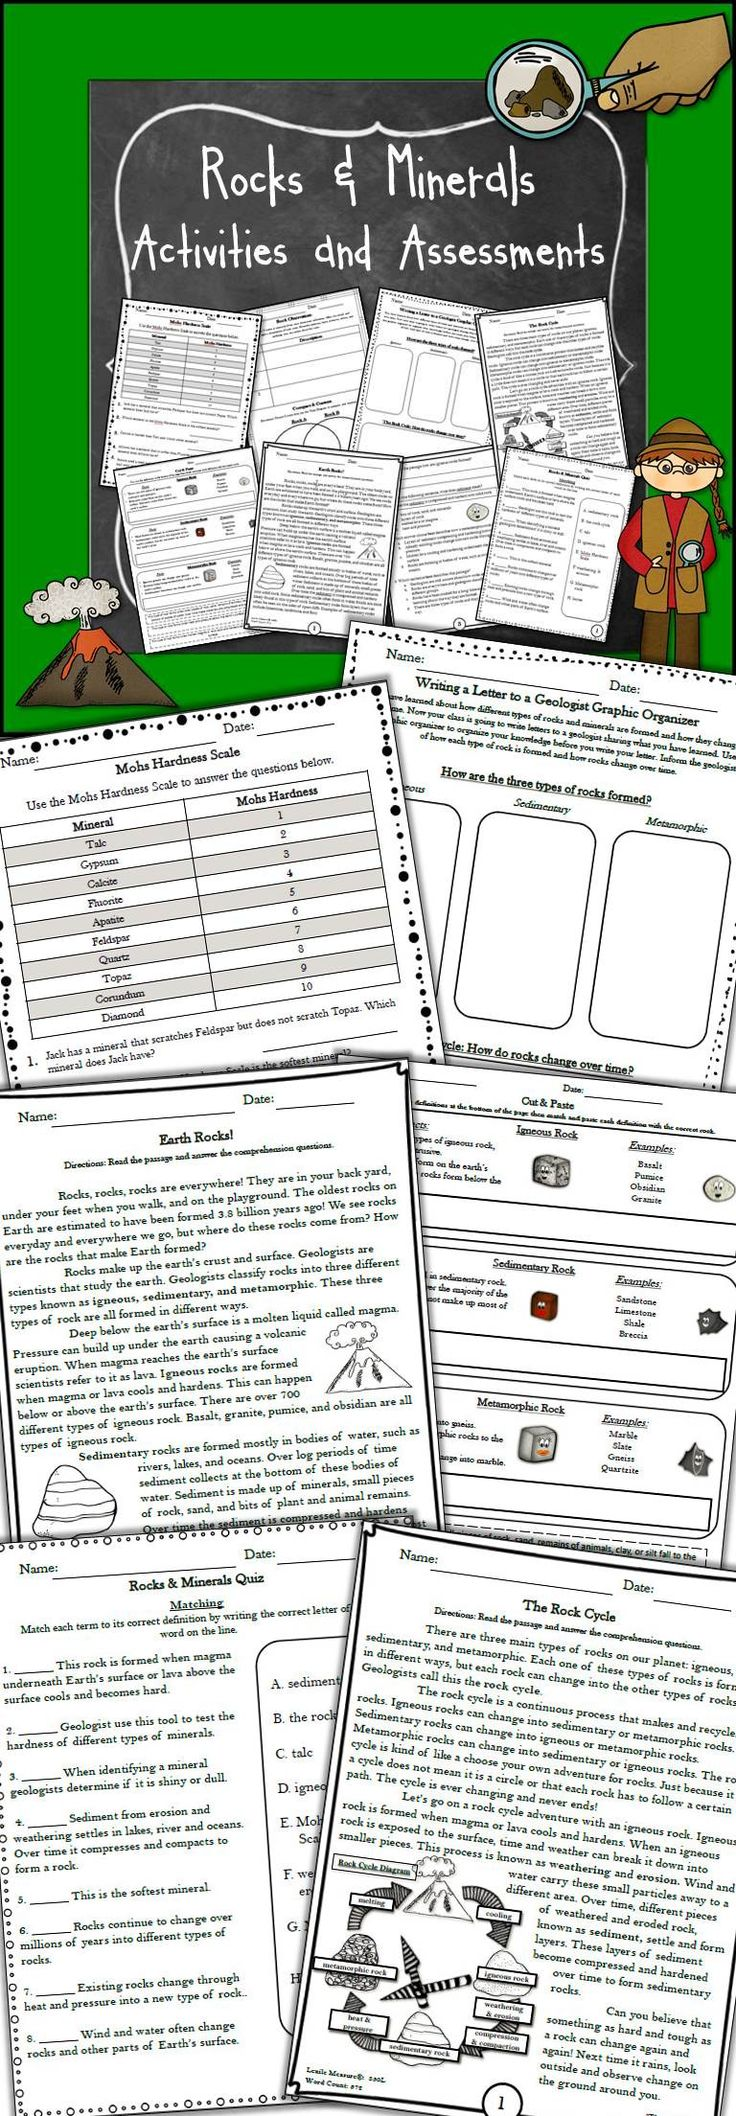 Rocks and Minerals Non-Fiction Passages and Assessments Bundle! Rocks & Minerals and literacy integration! This bundle is a great addition to any rocks and minerals unit. It includes a variety of non-fiction reading passage and multiple assessments on igneous, sedimentary, metamorphic rocks, the rock cycle, and so much more. Students will learn about rocks and minerals while reading comprehension passages and practicing writing skills.